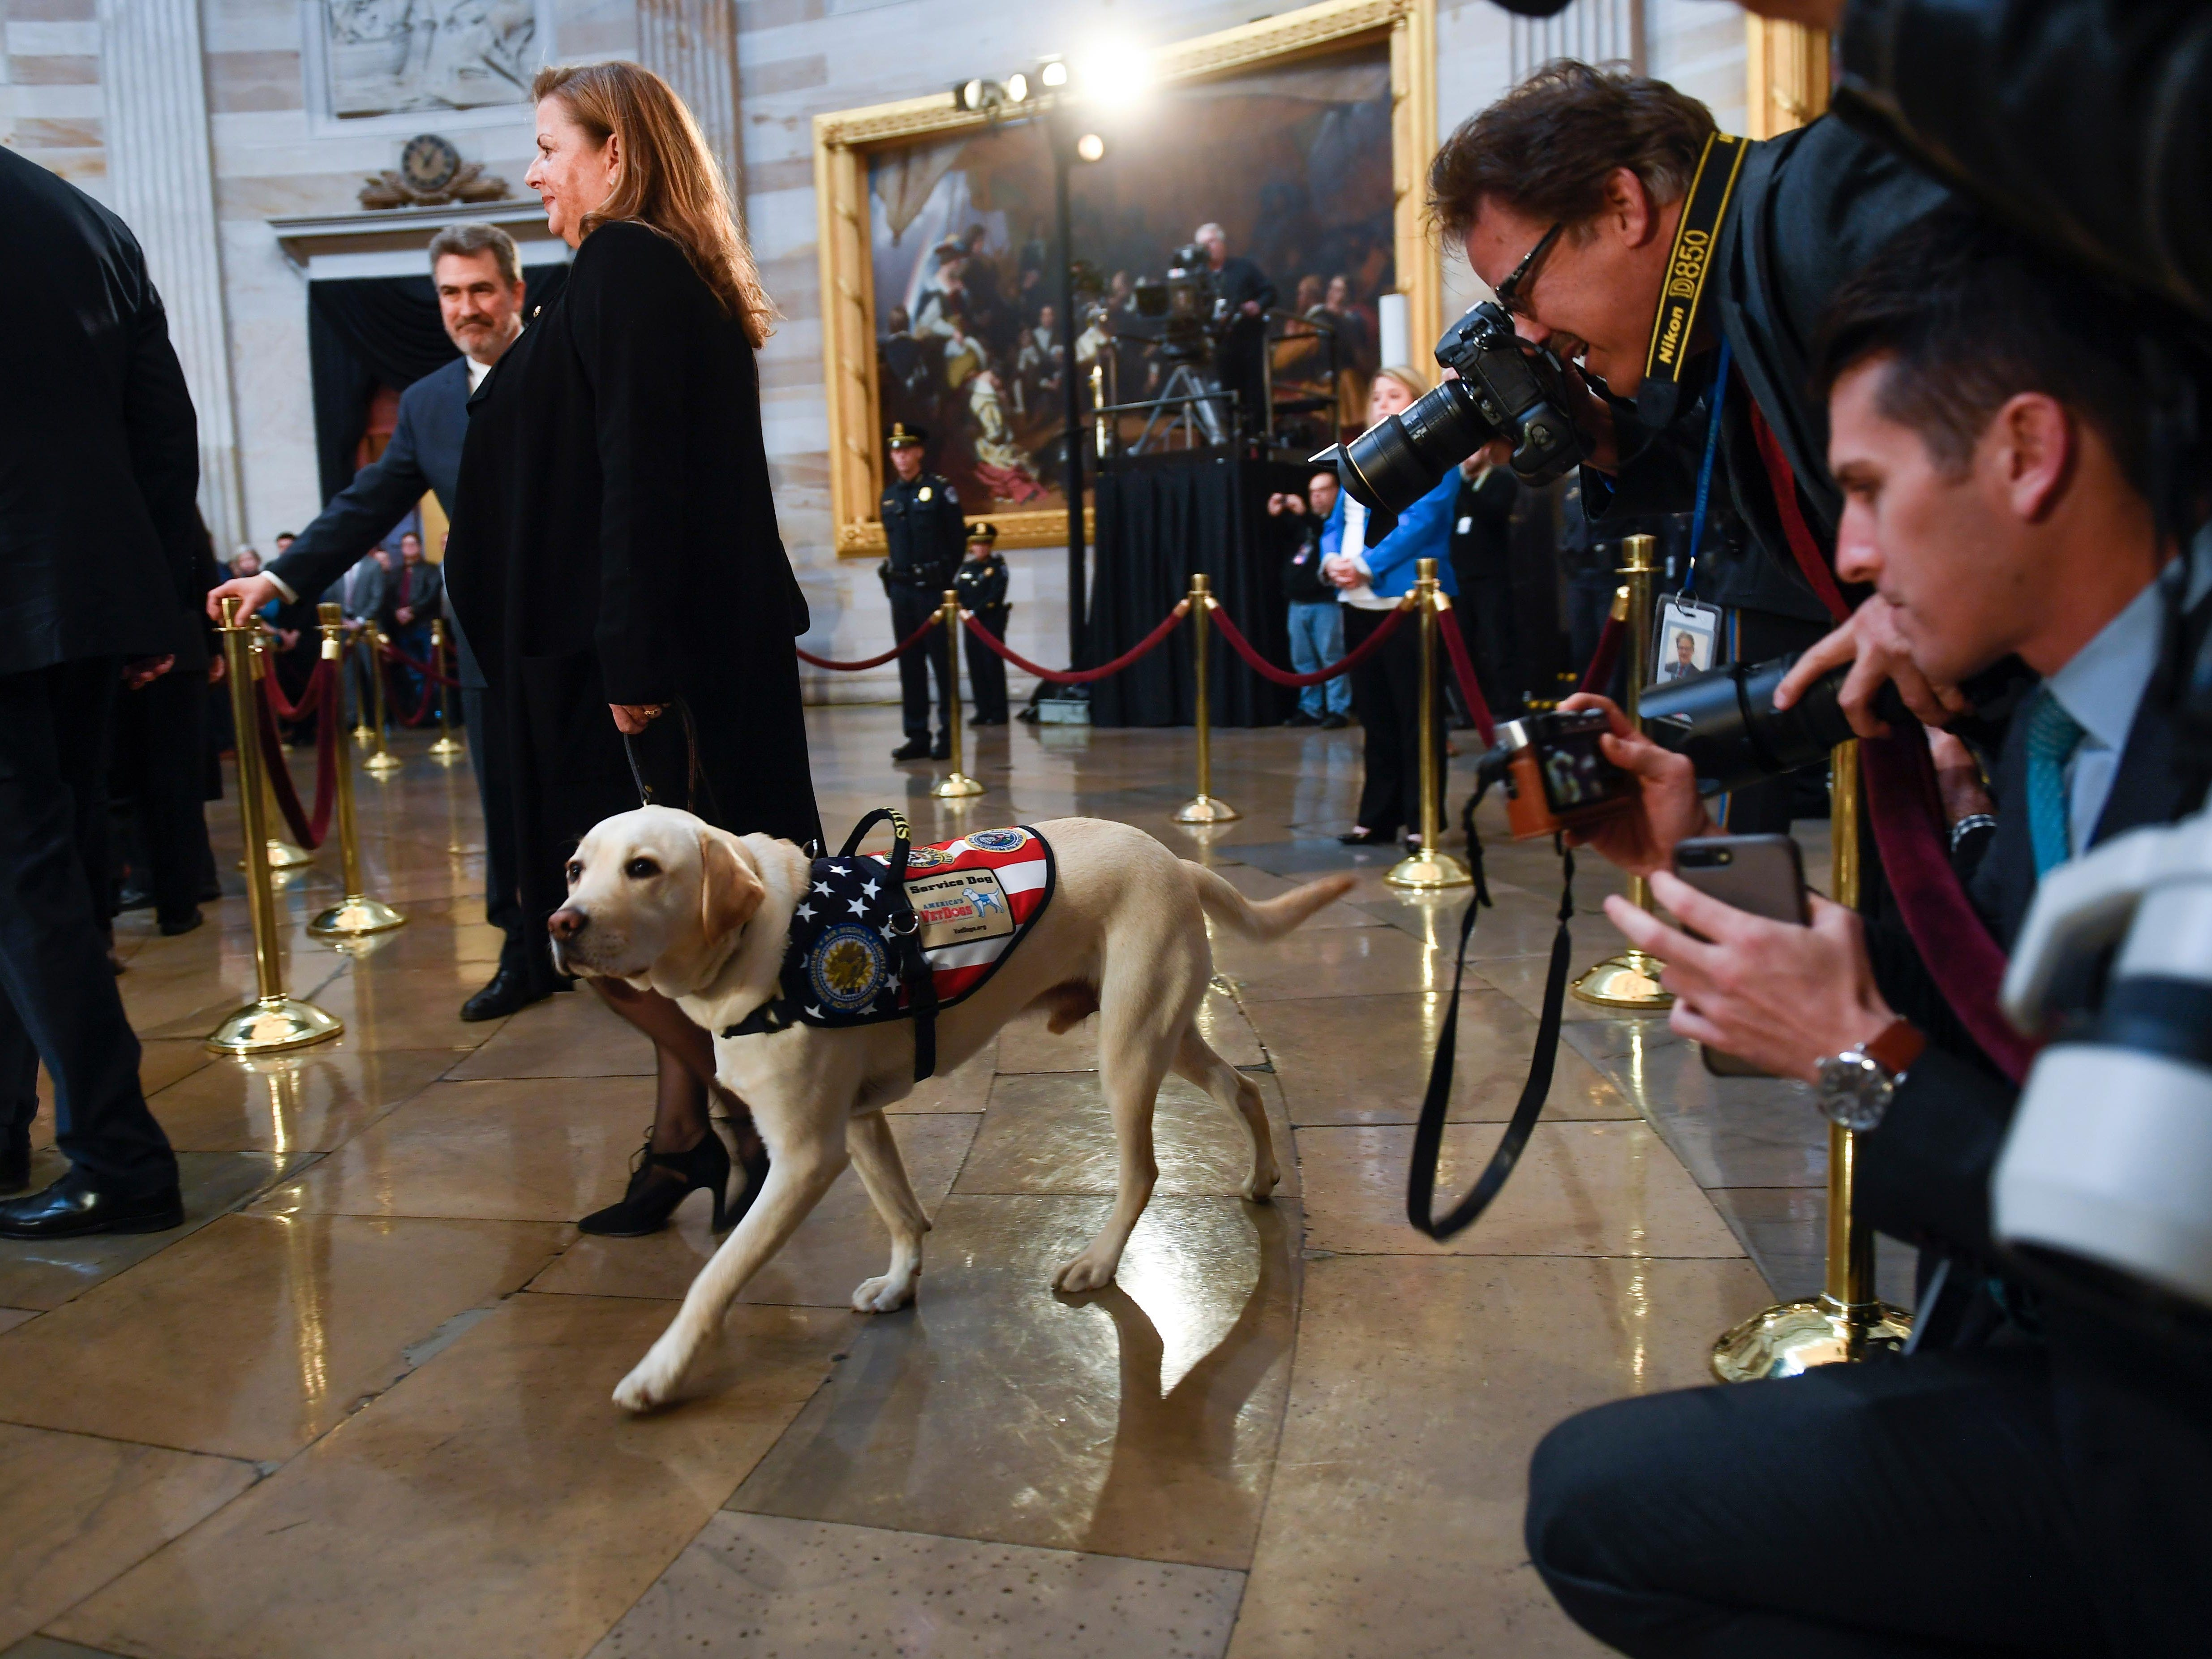 Dec 4, 2018;  Washington, DC, U.S.A; President George H.W. Bush's service dog Sully with Valerie Cramer of America's VetDogs at the U.S. Capitol to honor late president. Sully, a service dog trained by America's VetDogs, will join Walter Reed National Military Medical Center's Facility Dog Program after the holidays. President George H.W. Bush lies in state at the U.S. Capitol Rotunda. Mandatory Credit: Jack Gruber-USA TODAY ORIG FILE ID:  20181204_ajw_usa_020.jpg